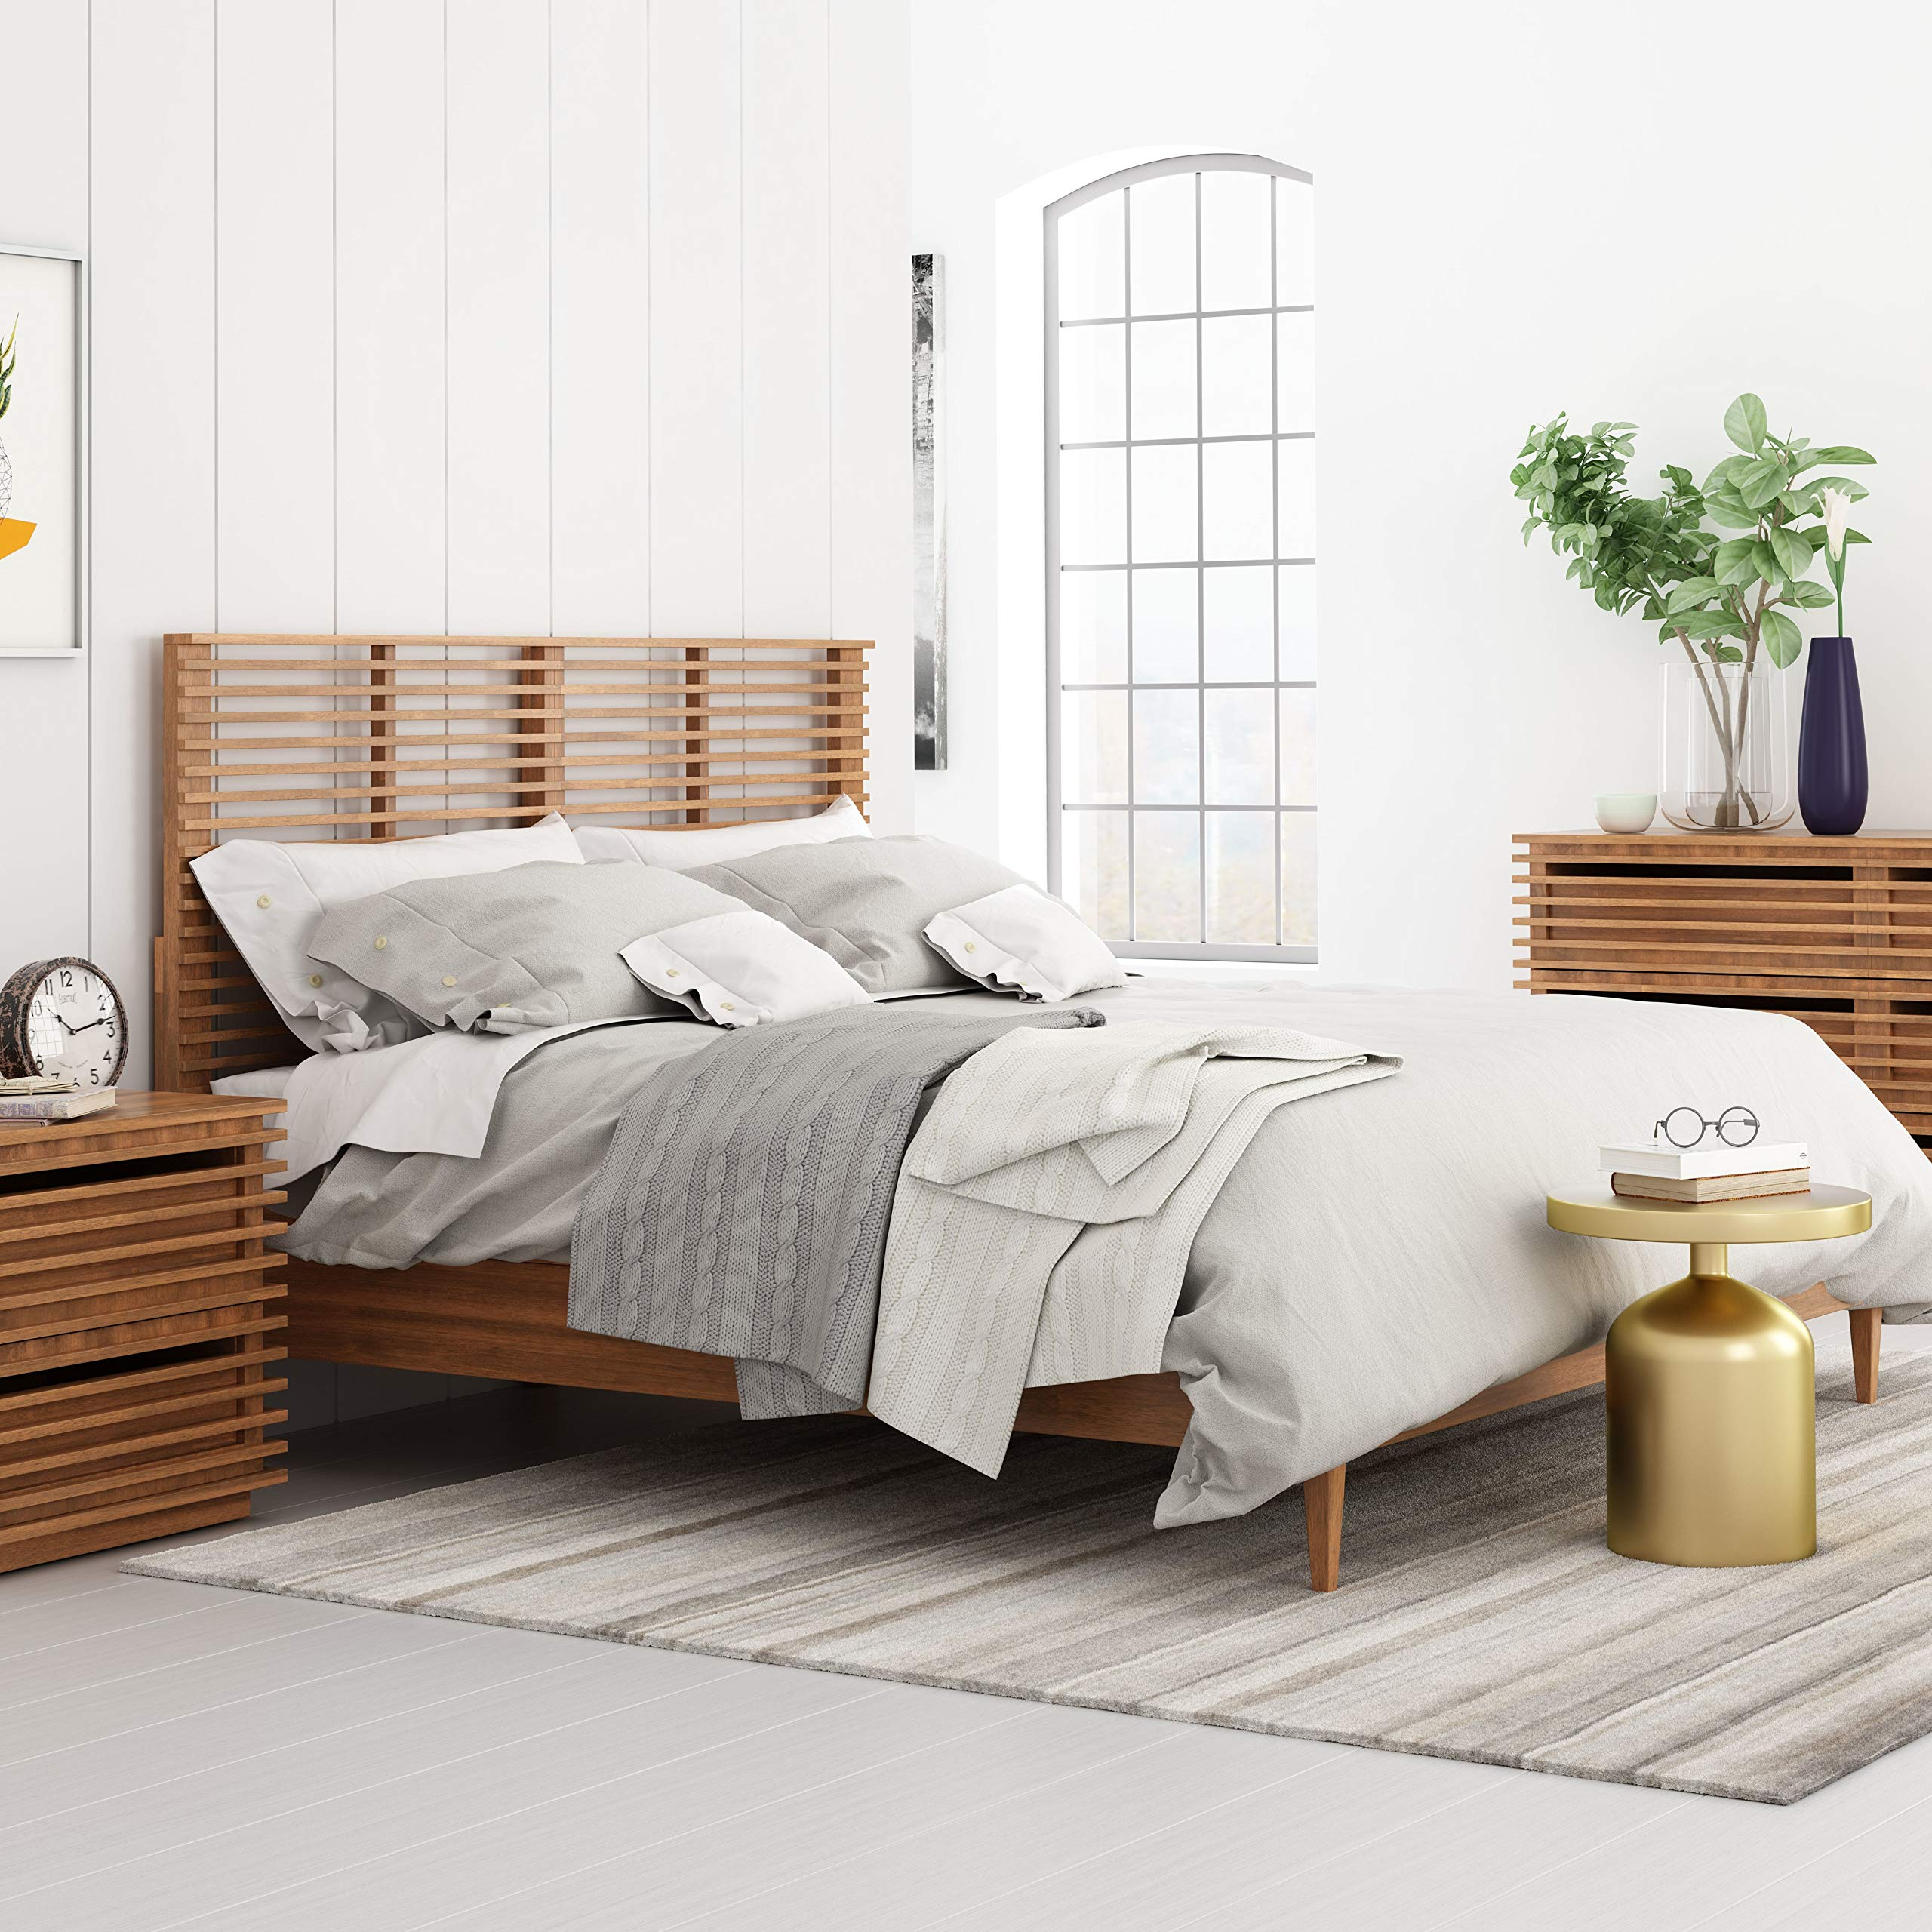 Linea Headboard King Walnut Brown Modern Contemporary Wood Finish by Unknown